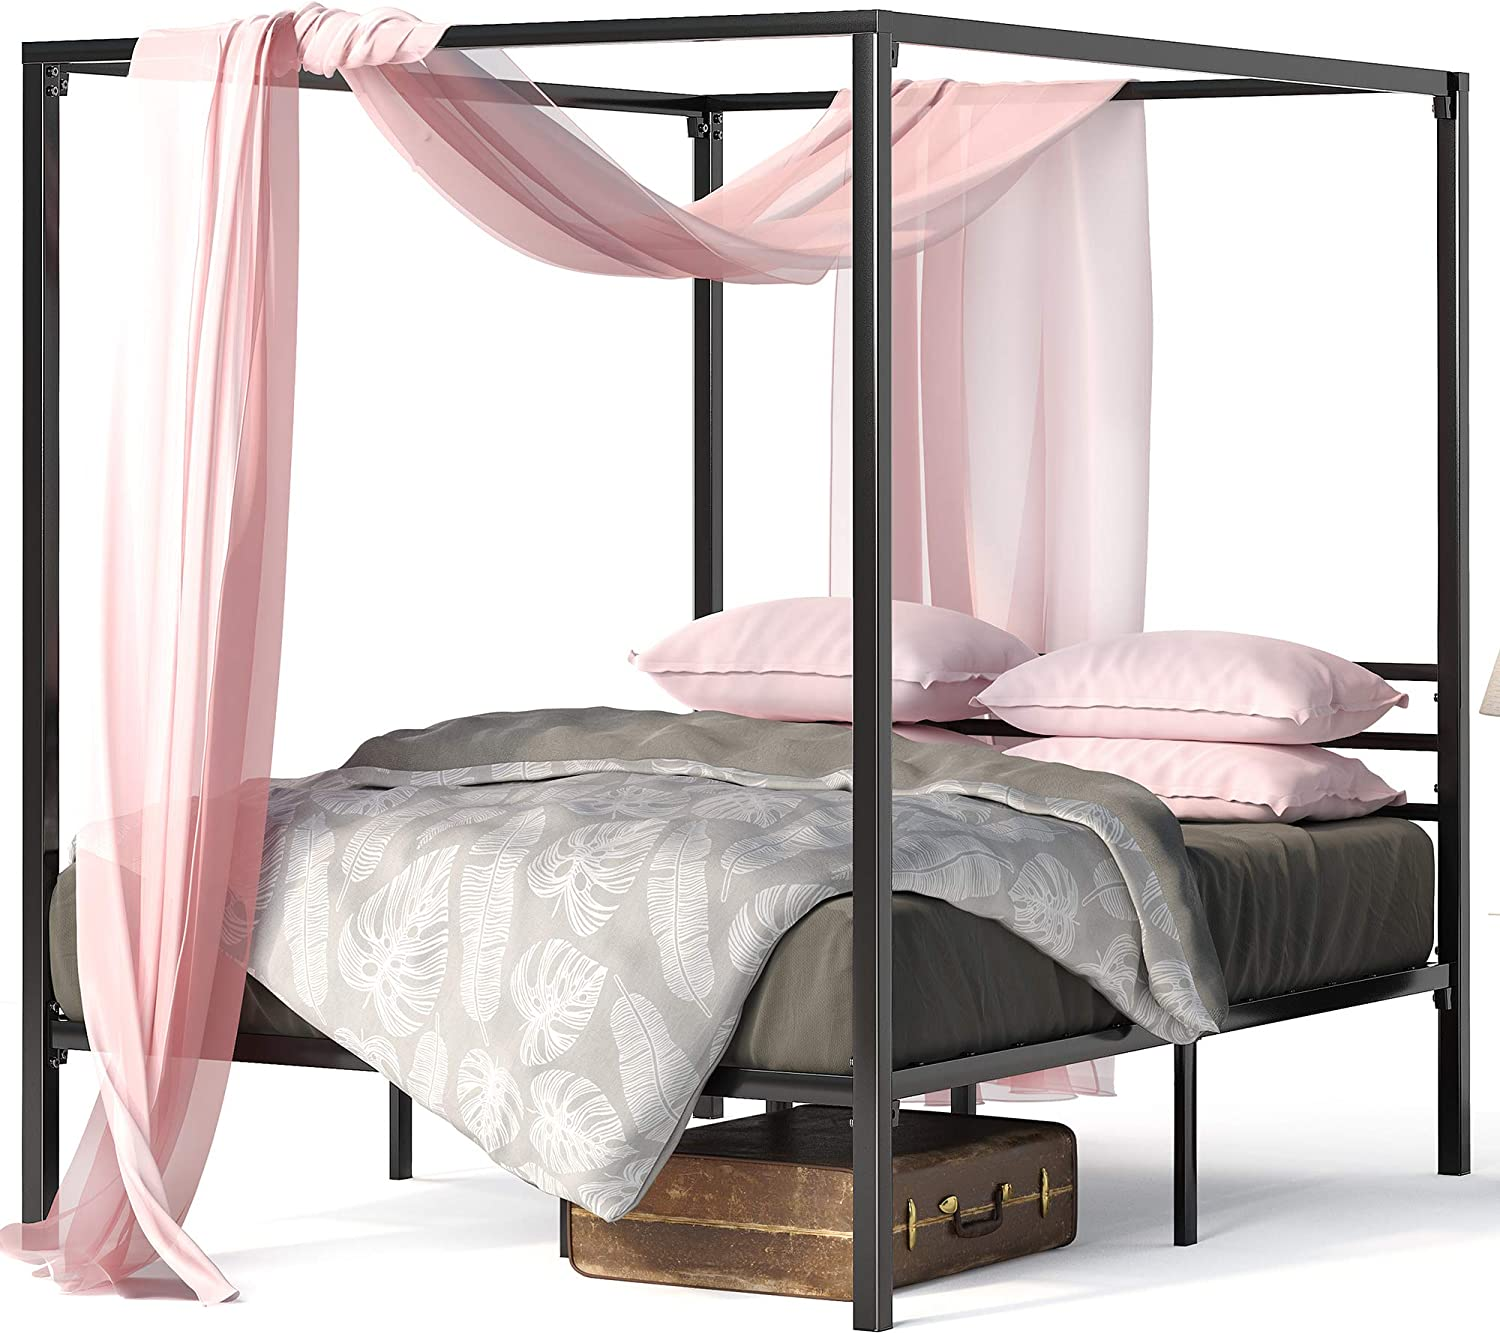 Image result for canopy bed frame